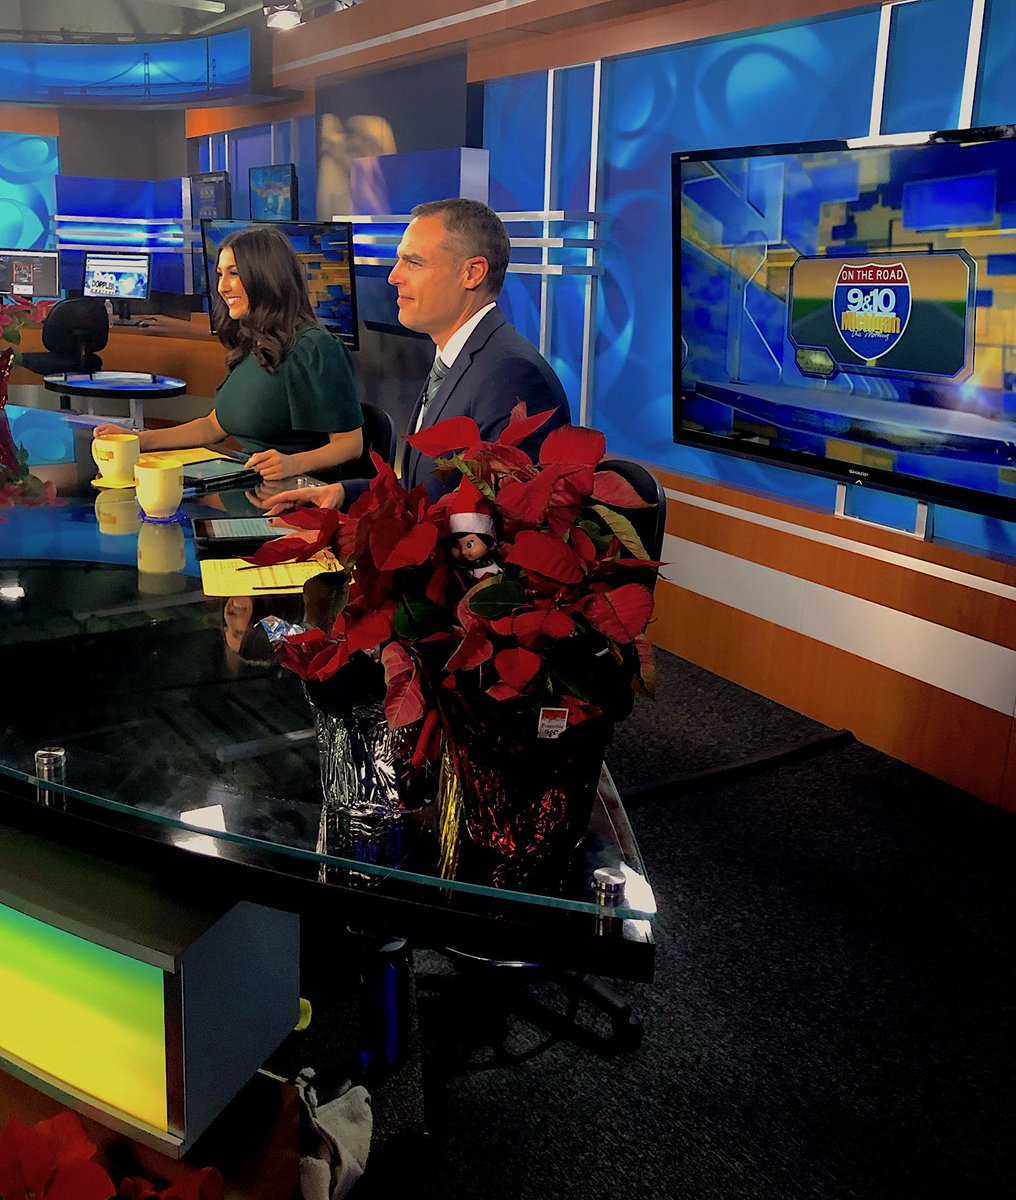 We Found A LITTLE Someone Trying To Get Behind The Scenes Of Michigan This Morning Earlier Today Mittens Was Planted In Studio Taking Some